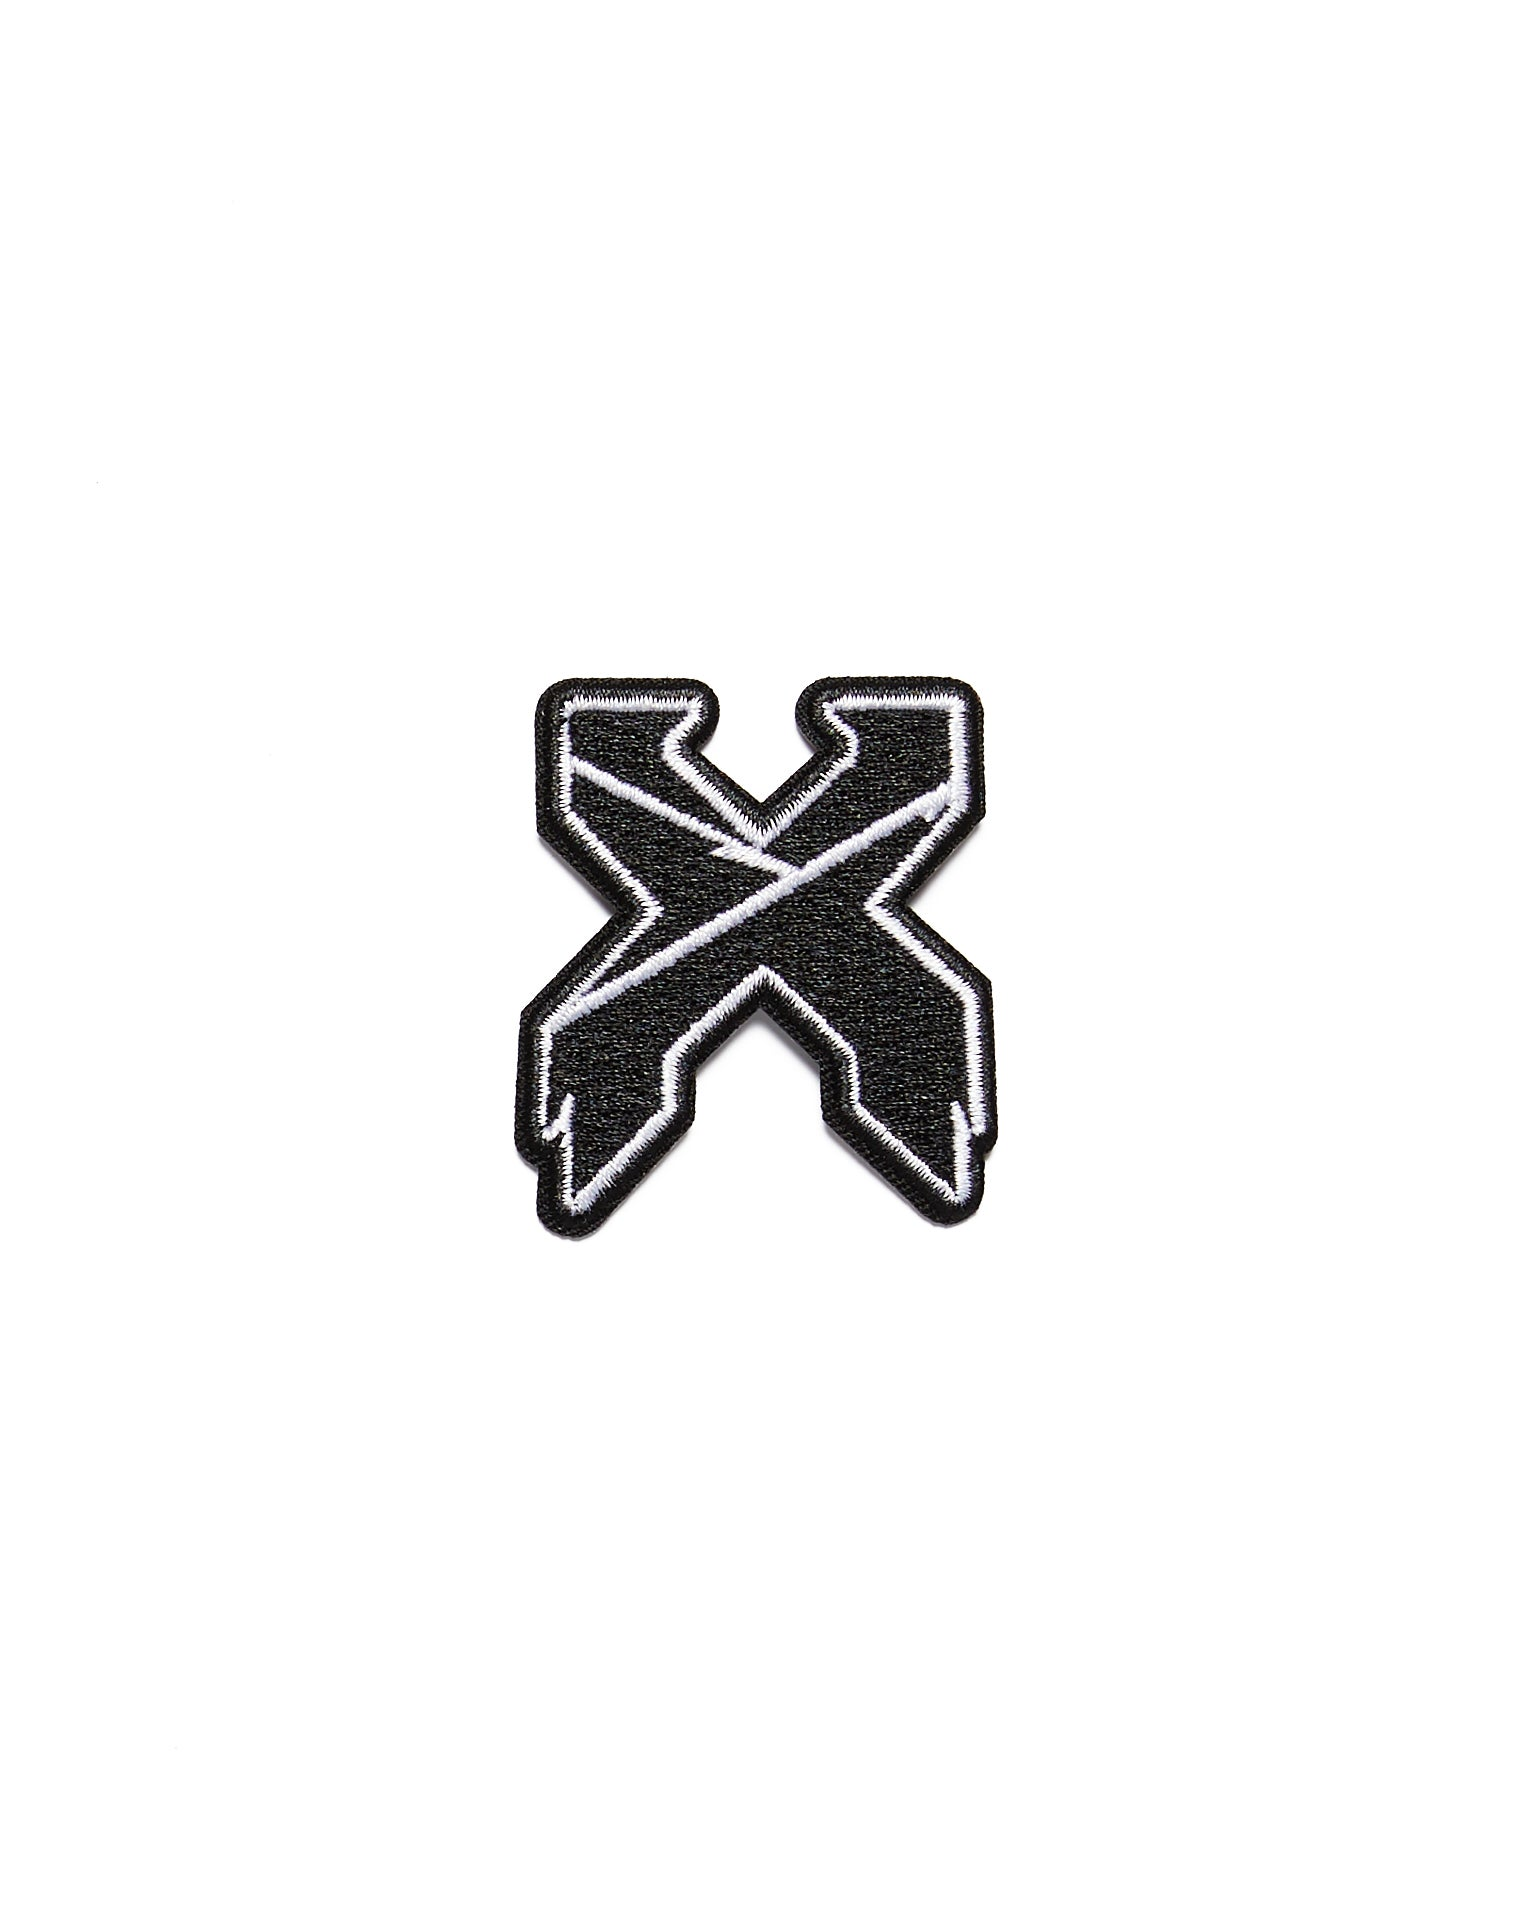 Excision 'Sliced' Logo Patch - 1.75